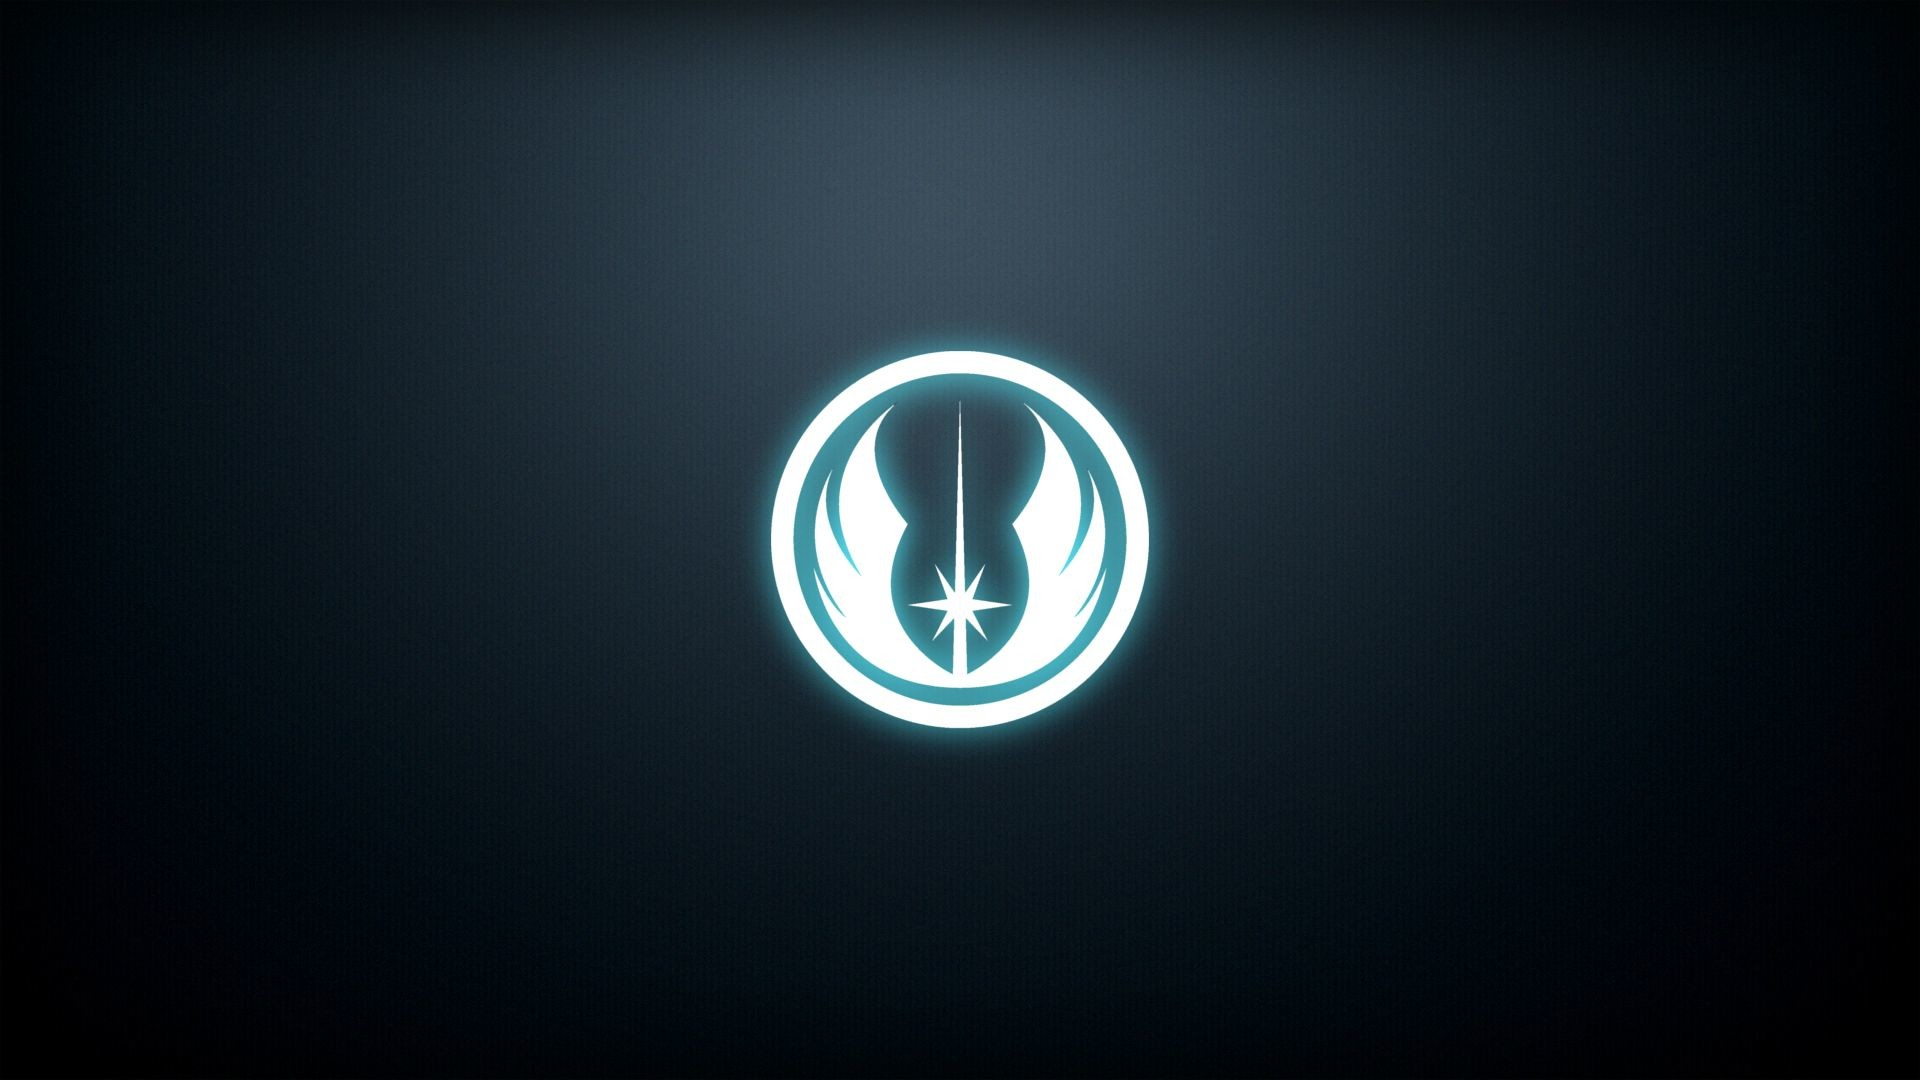 Star Wars Wallpapers with Jedi Symbol | The Art Mad Wallpapers